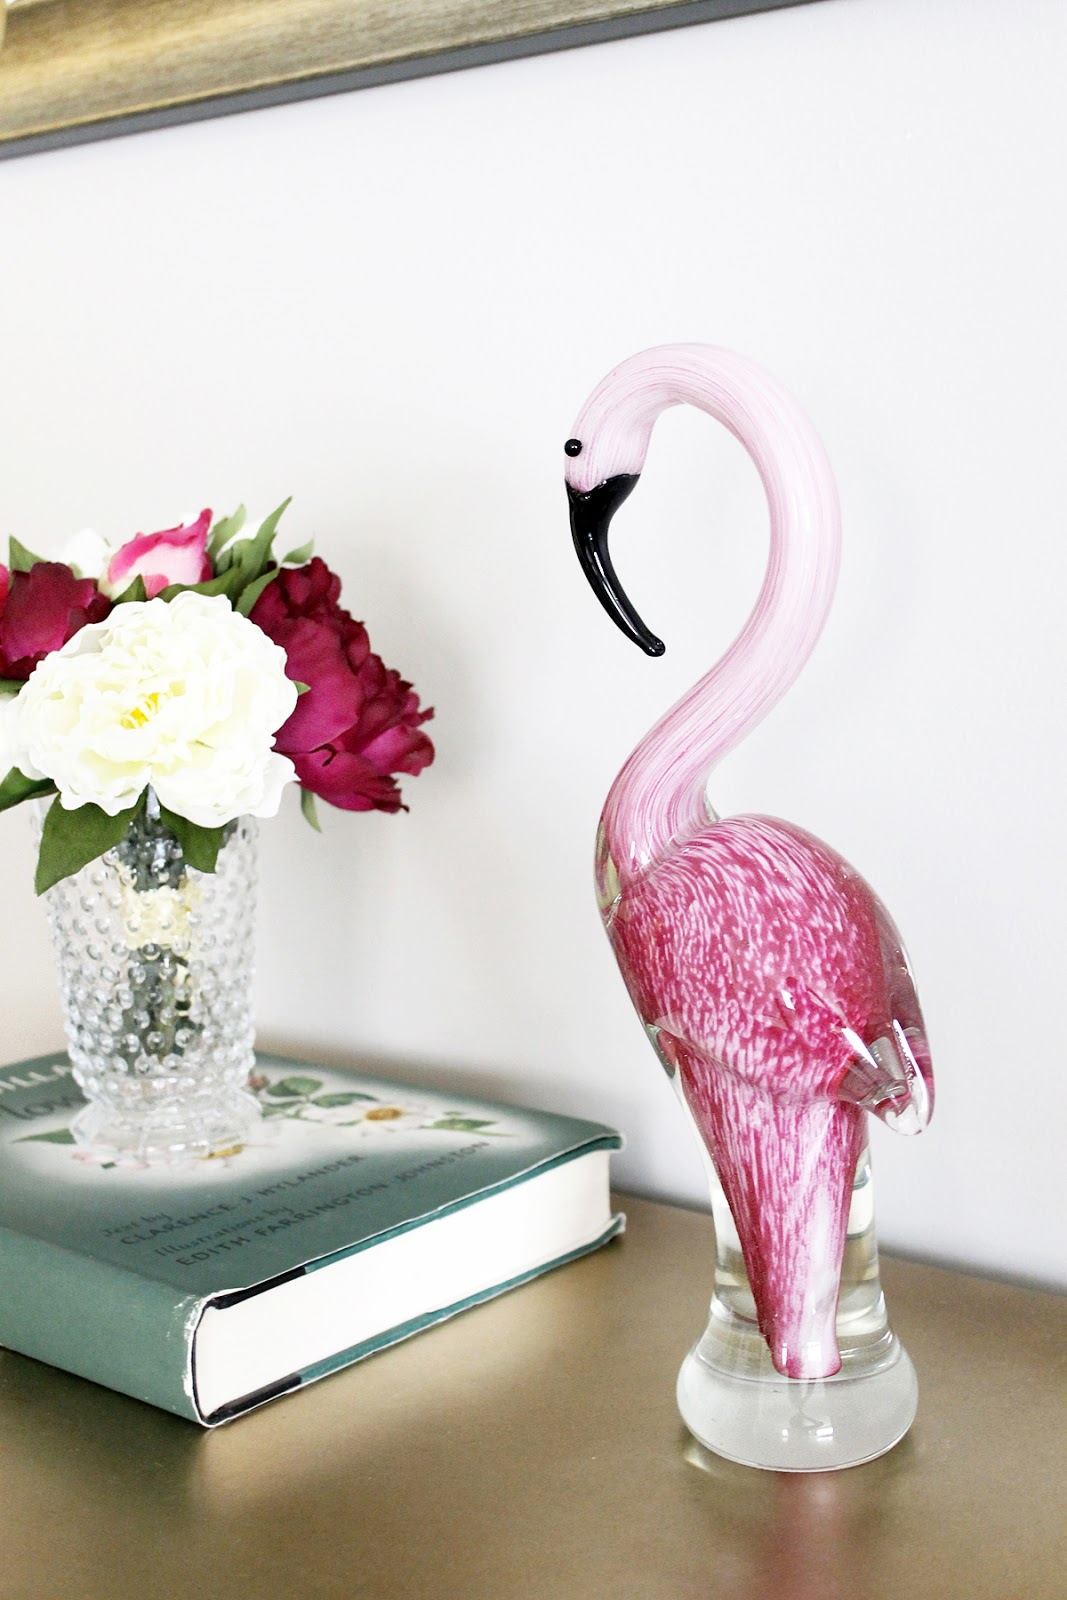 AM Dolce Vita: Fabulous Find: Pink Flamingo on decorating with giraffes, decorating with chickens, decorating with palm trees, decorating with penguins, decorating with horses, decorating with amazing grace,